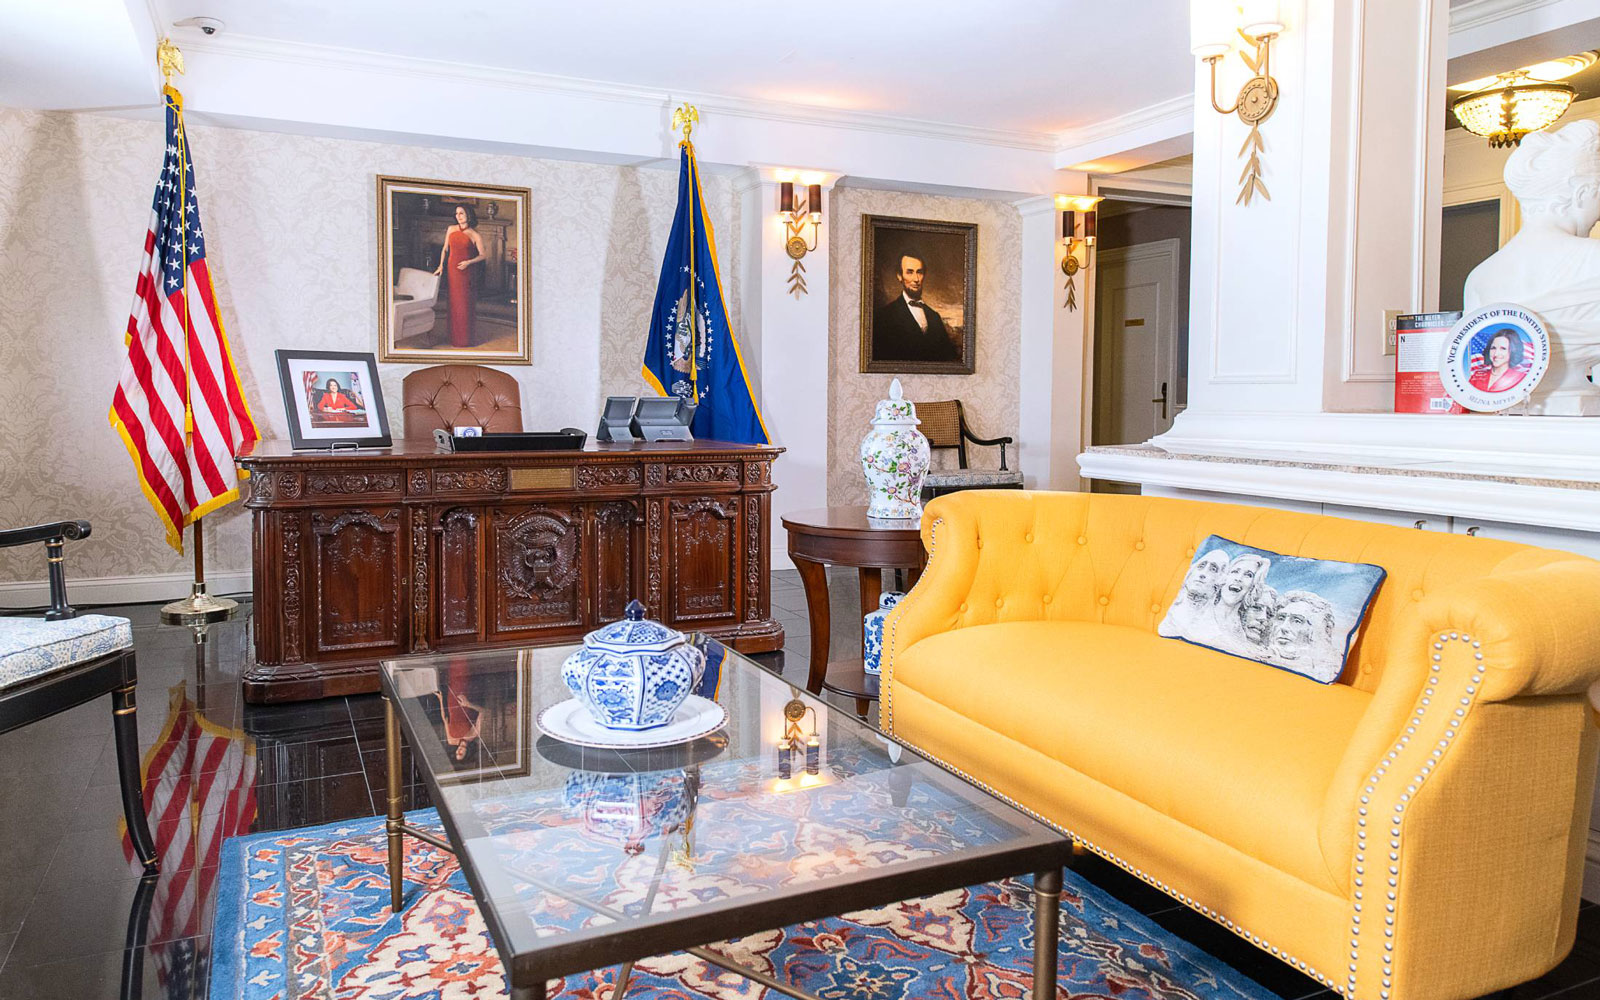 Selina Meyer's Oval Office at the Hamilton Hotel